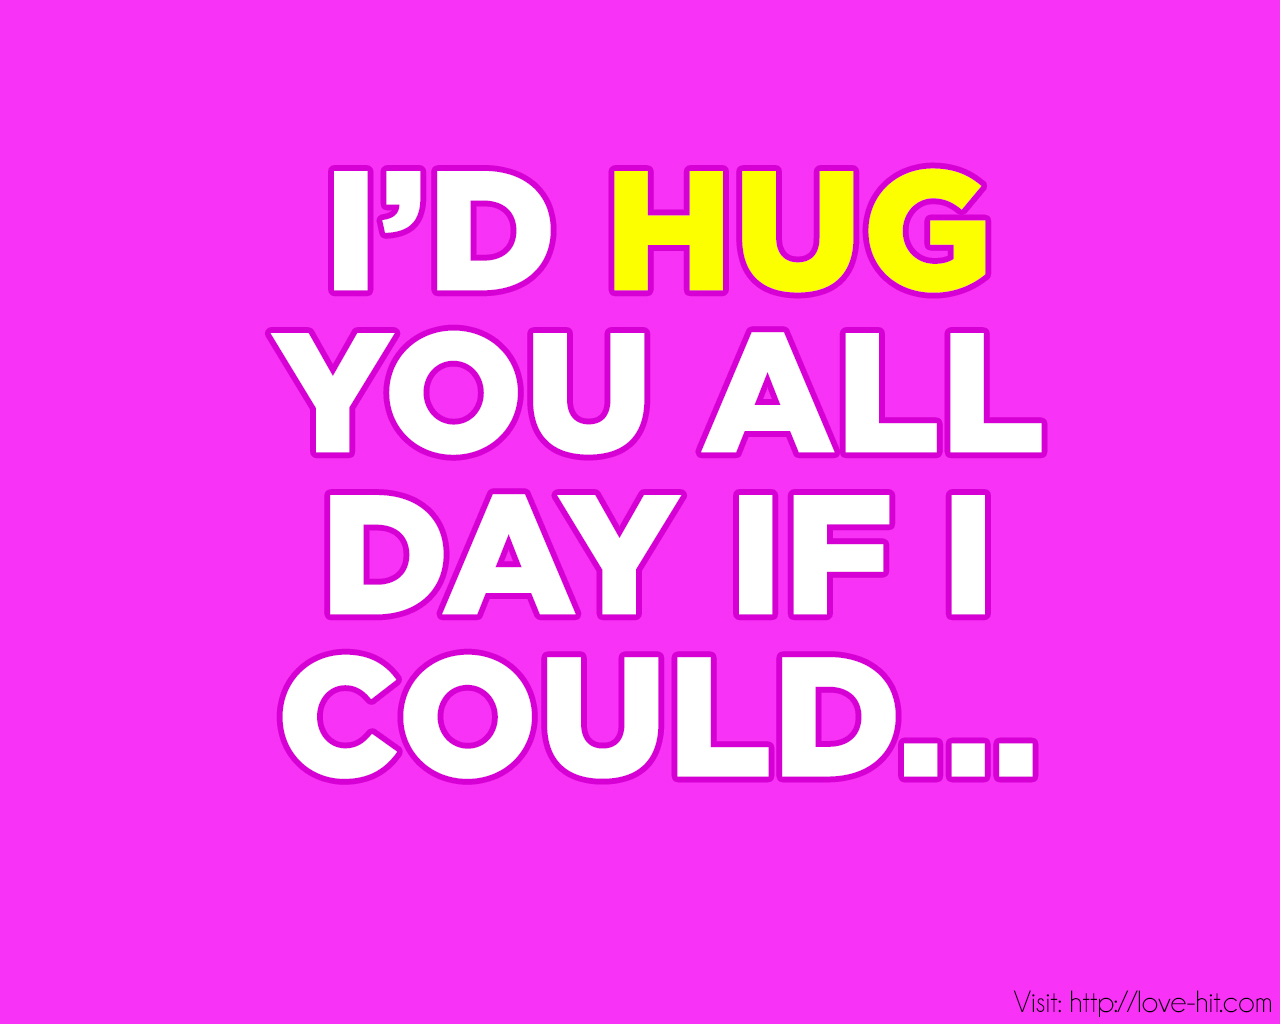 I Want To Cuddle With You Quotes: Cute Quotes About Hugs. QuotesGram